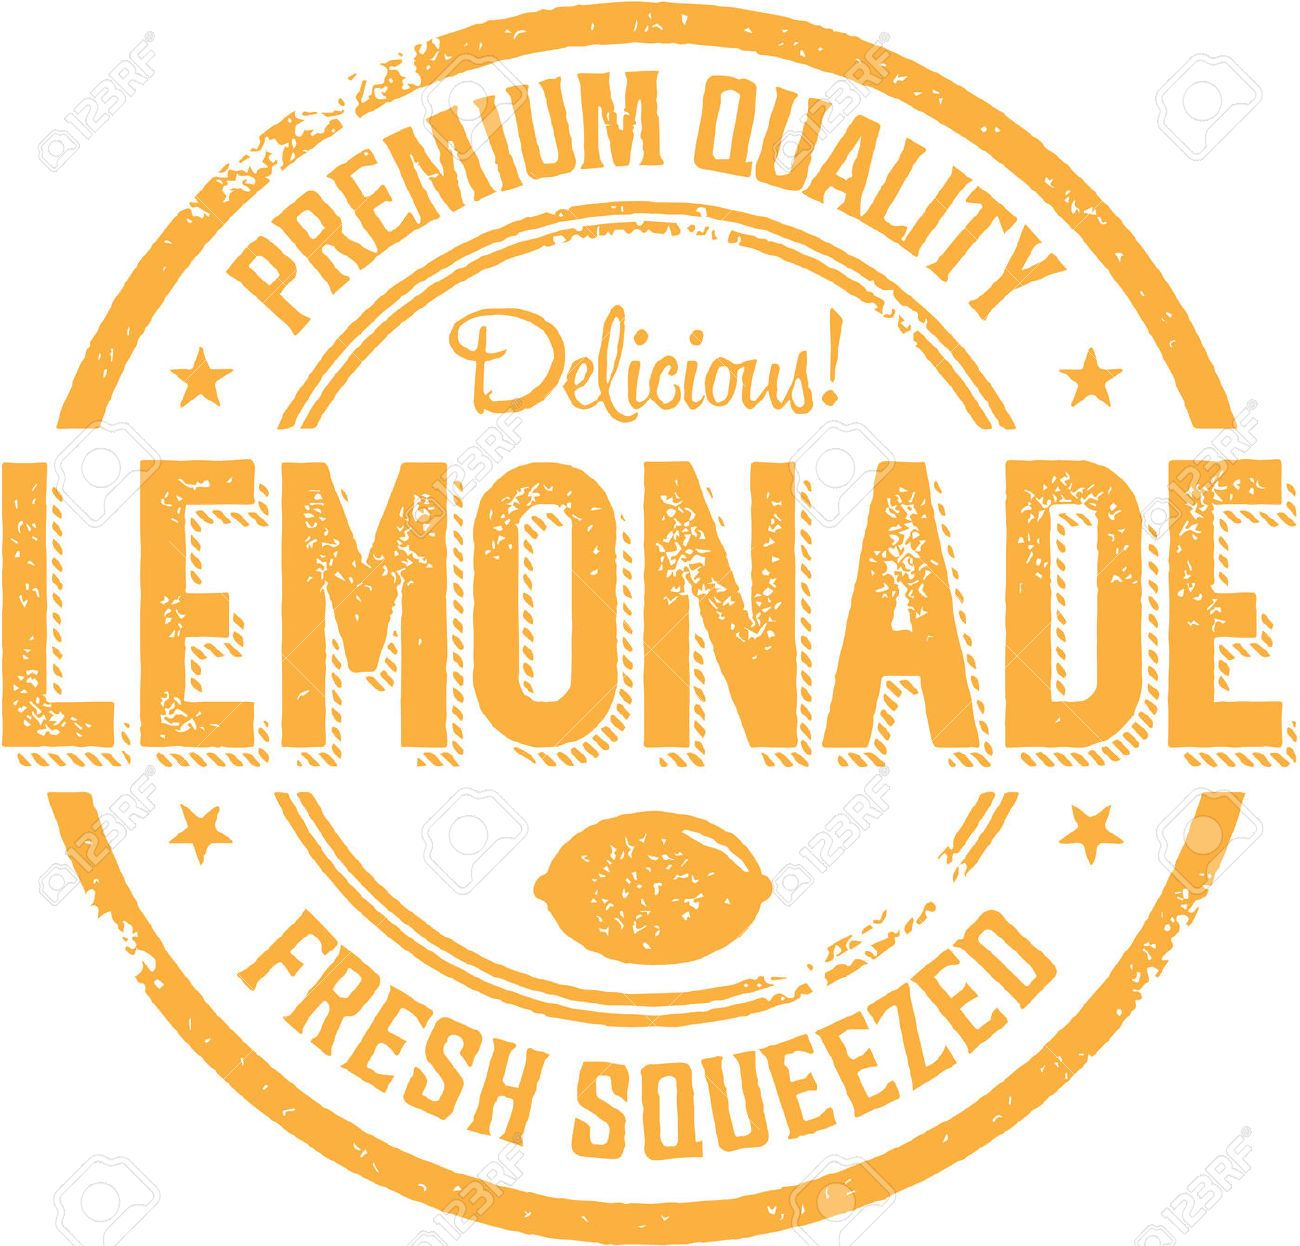 Vintage lemonade stand clipart graphic black and white library vintage lemonade label packaging - Αναζήτηση Google ... graphic black and white library